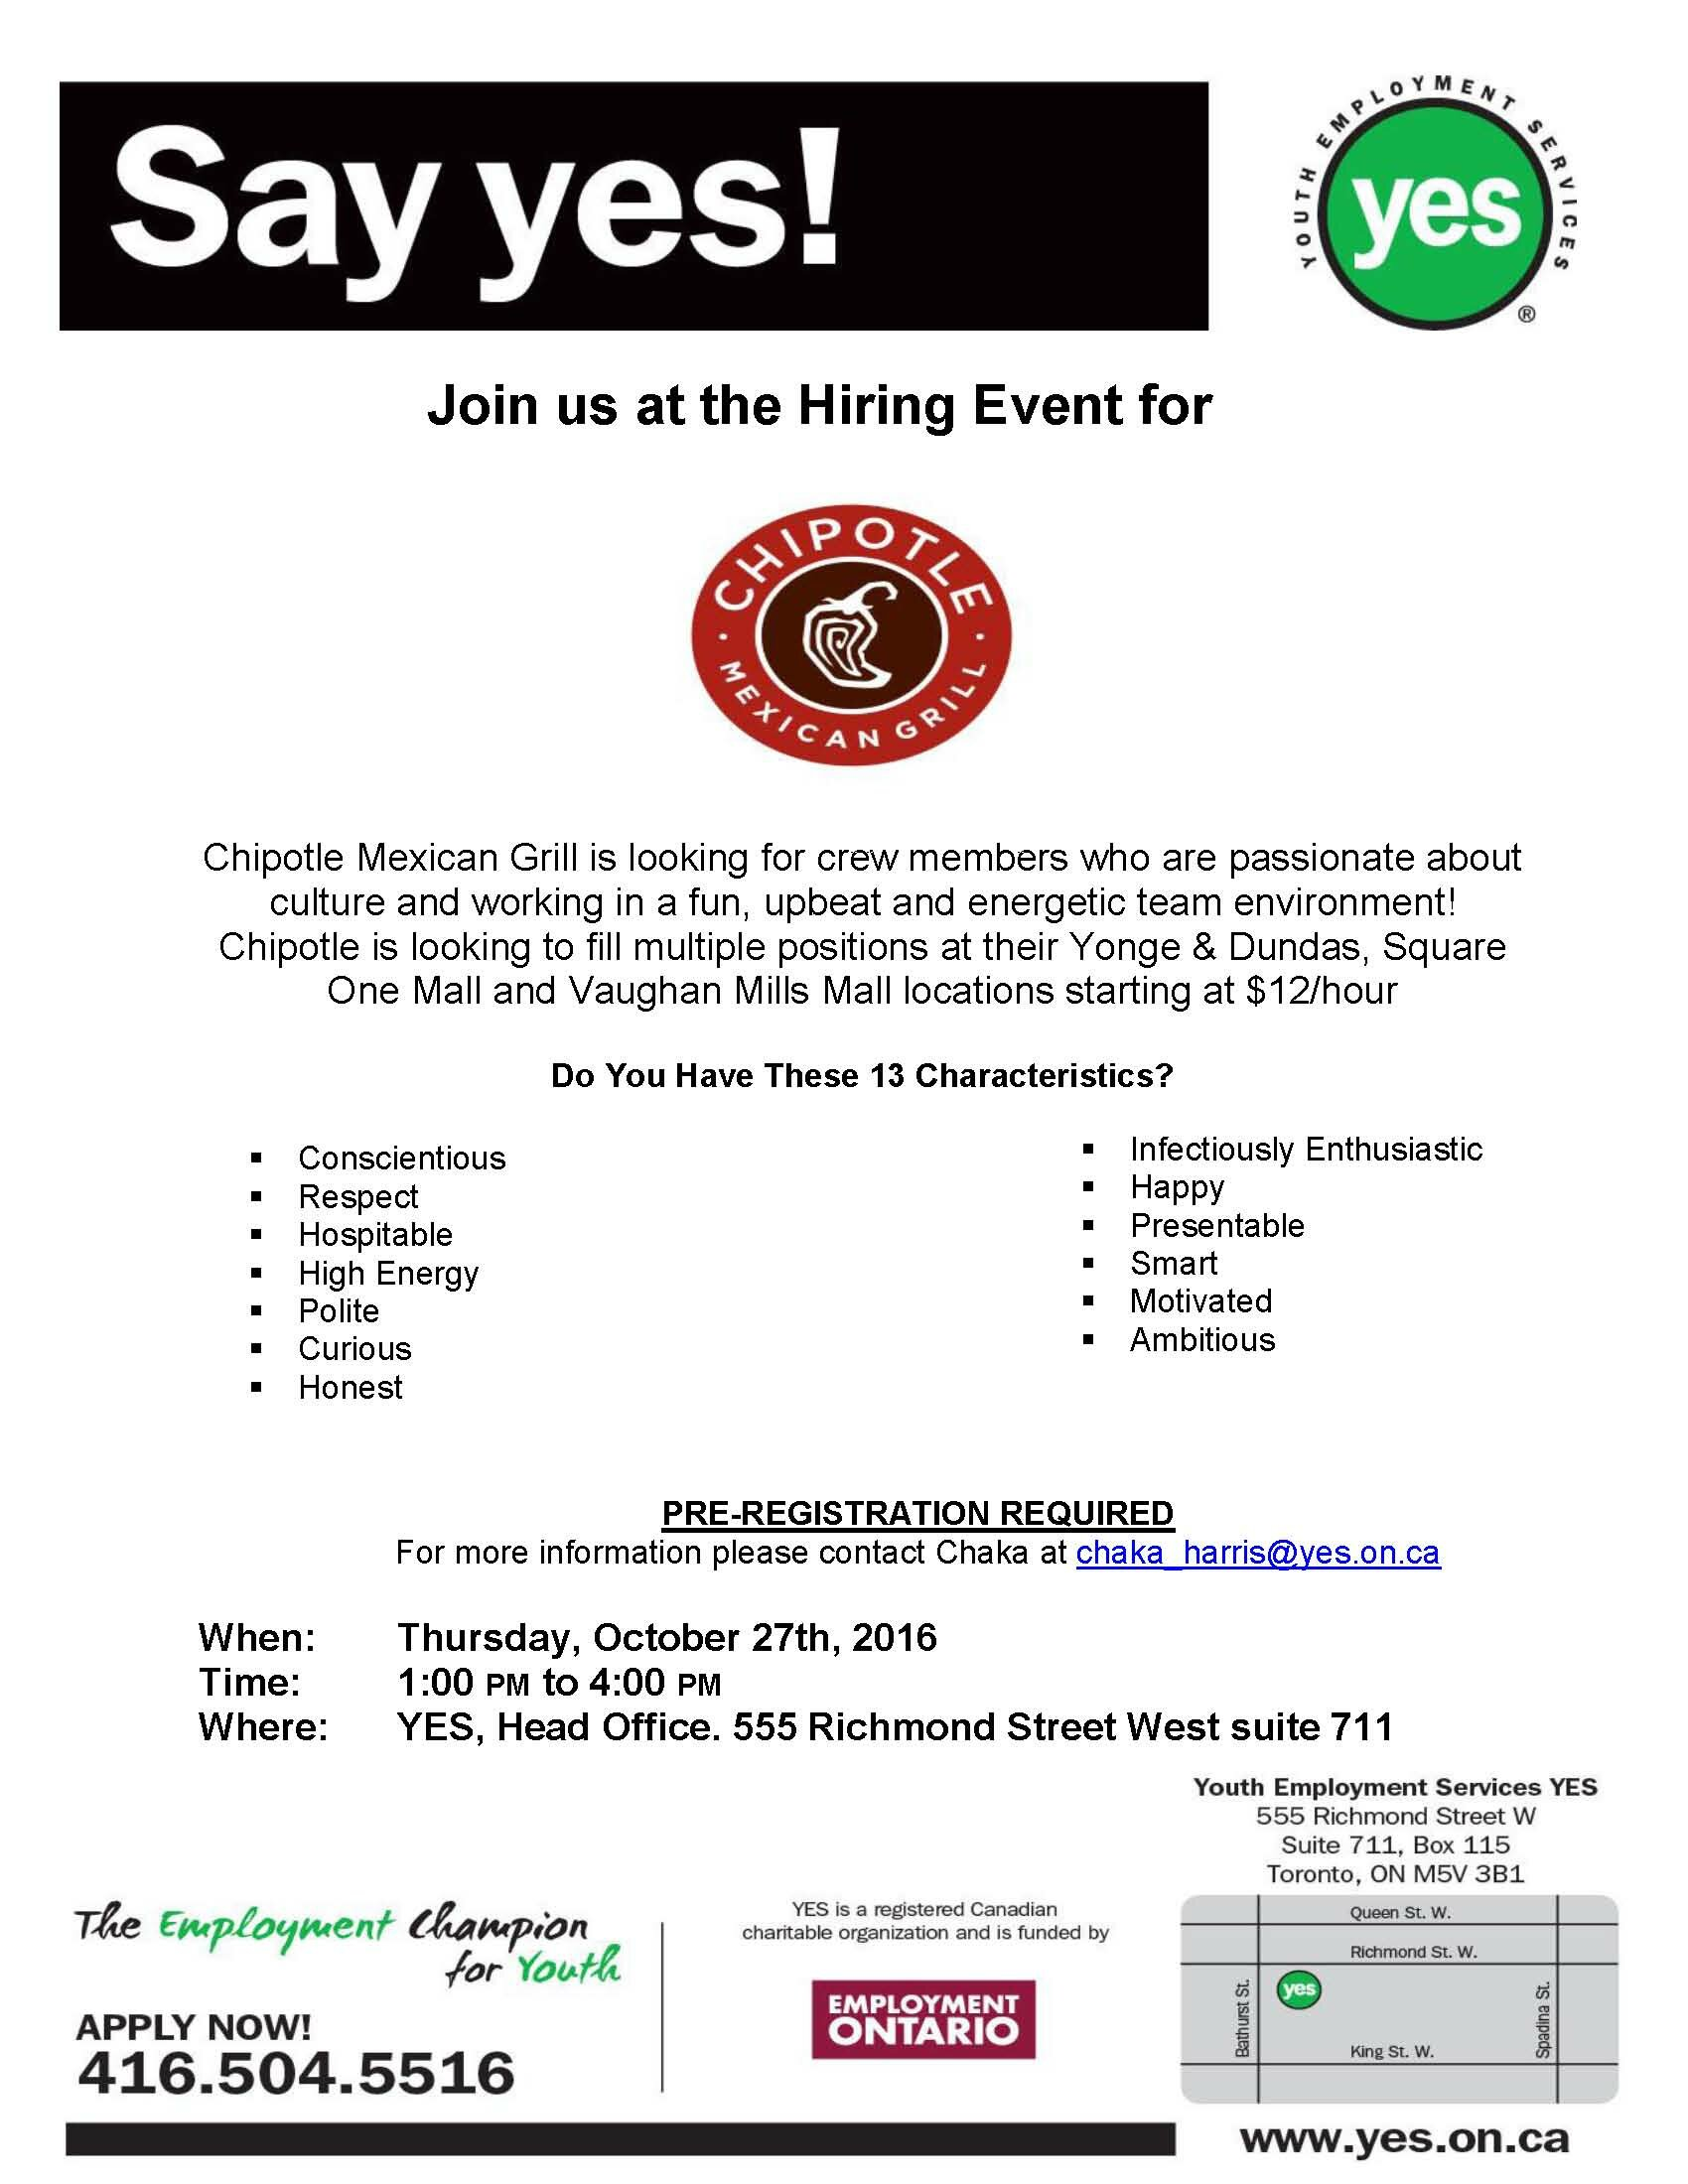 Chipotle Hiring Event Poster